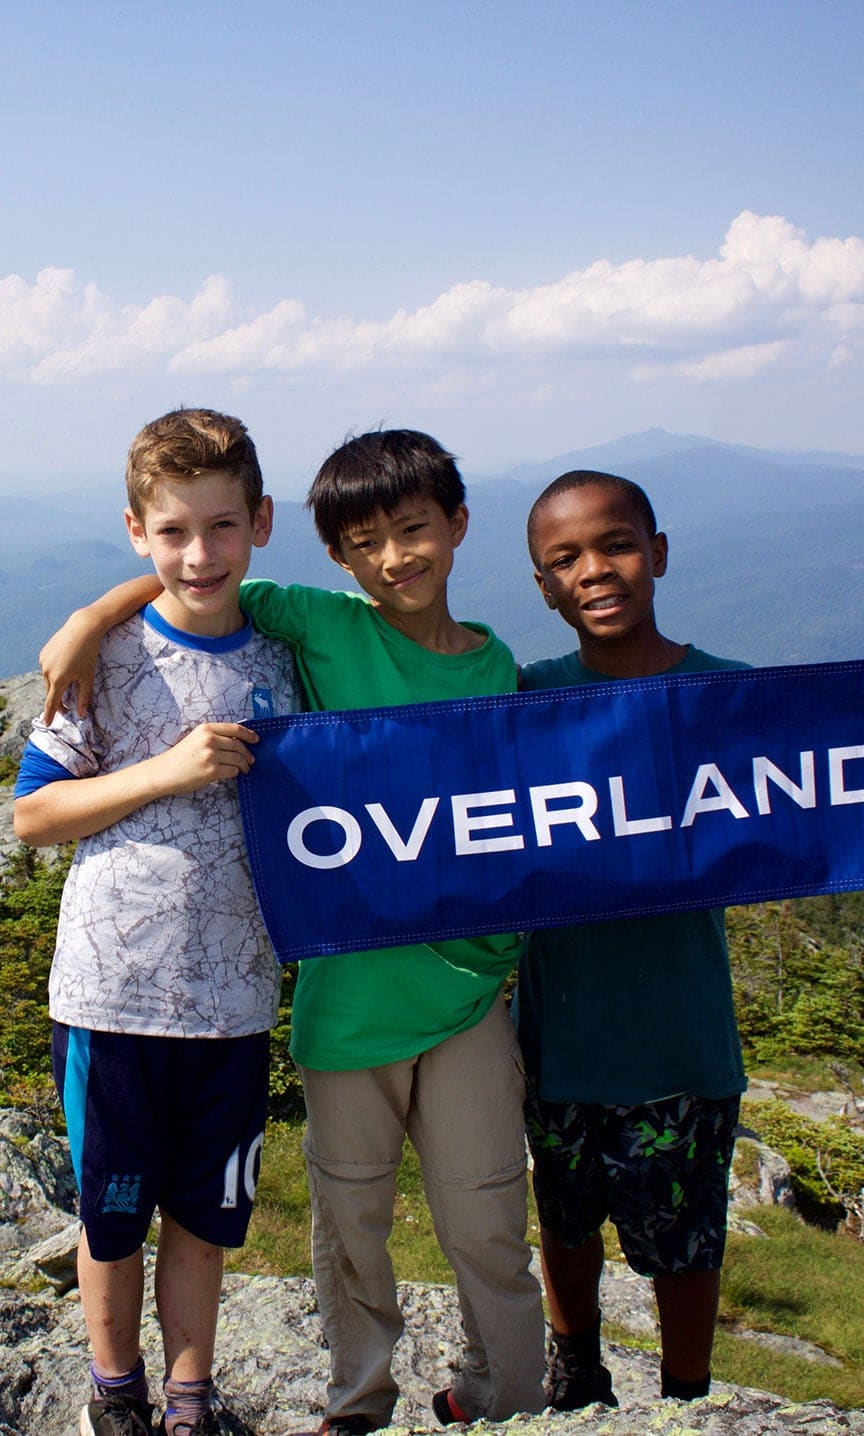 Campers hold up the Overland banner while on a summer adventure hiking trip